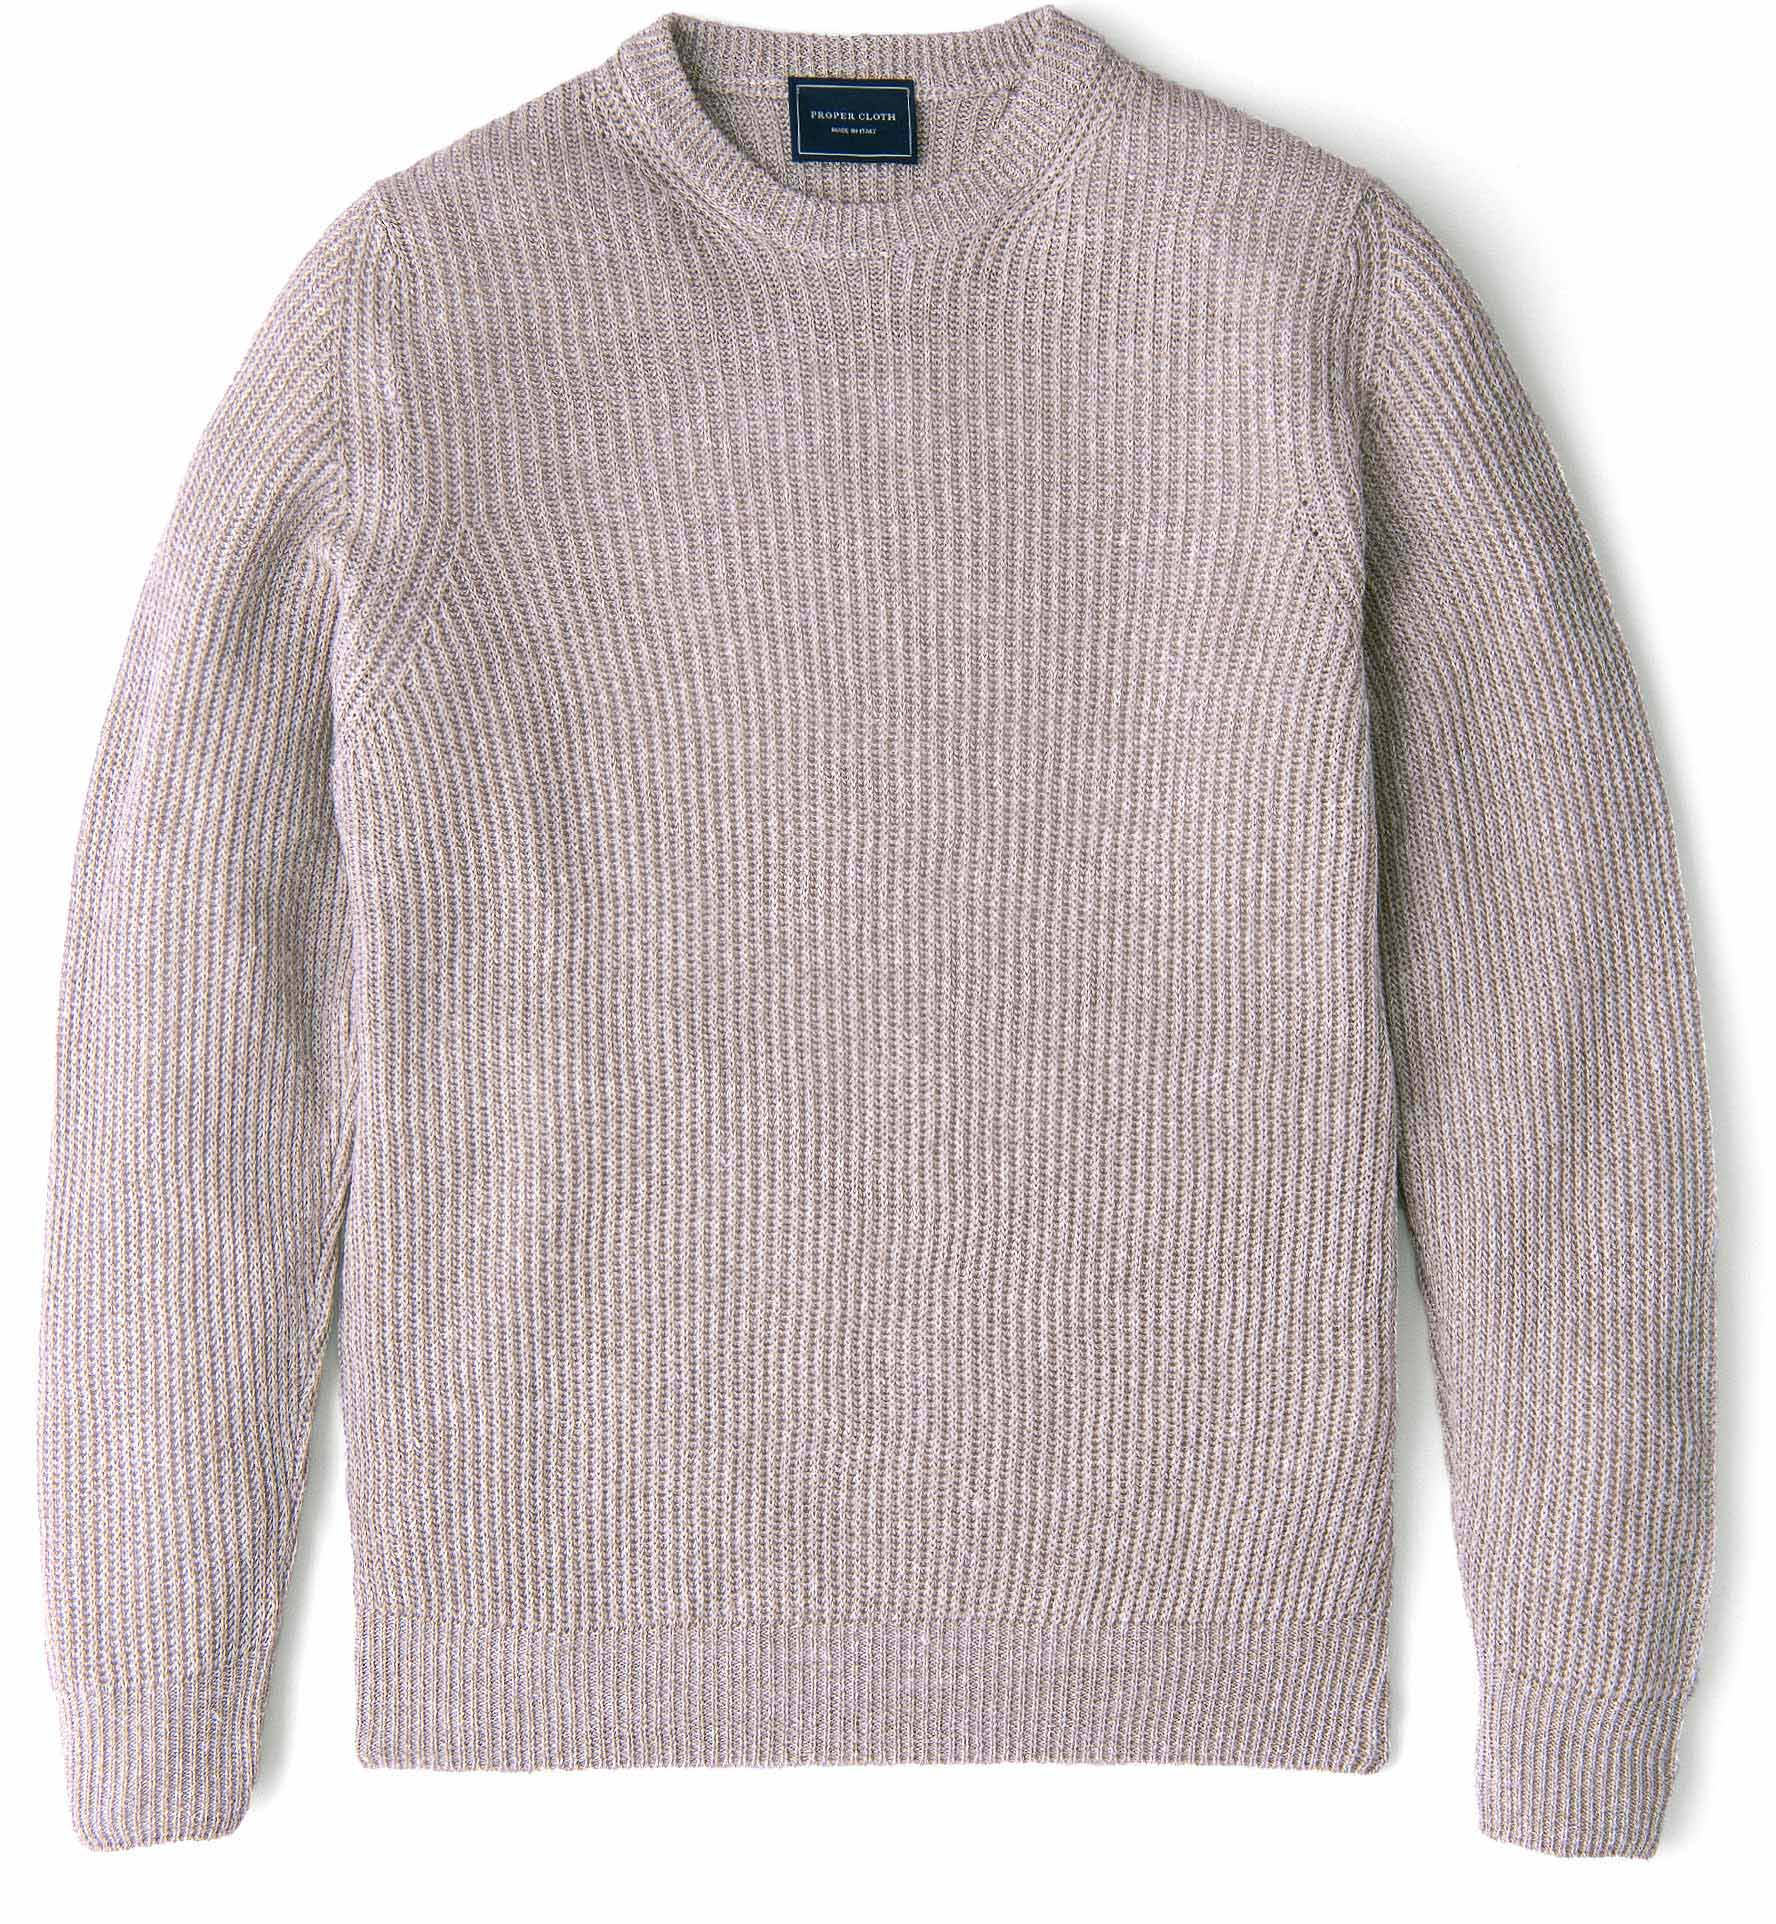 Zoom Image of Amalfi Beige Cotton and Linen Sweater